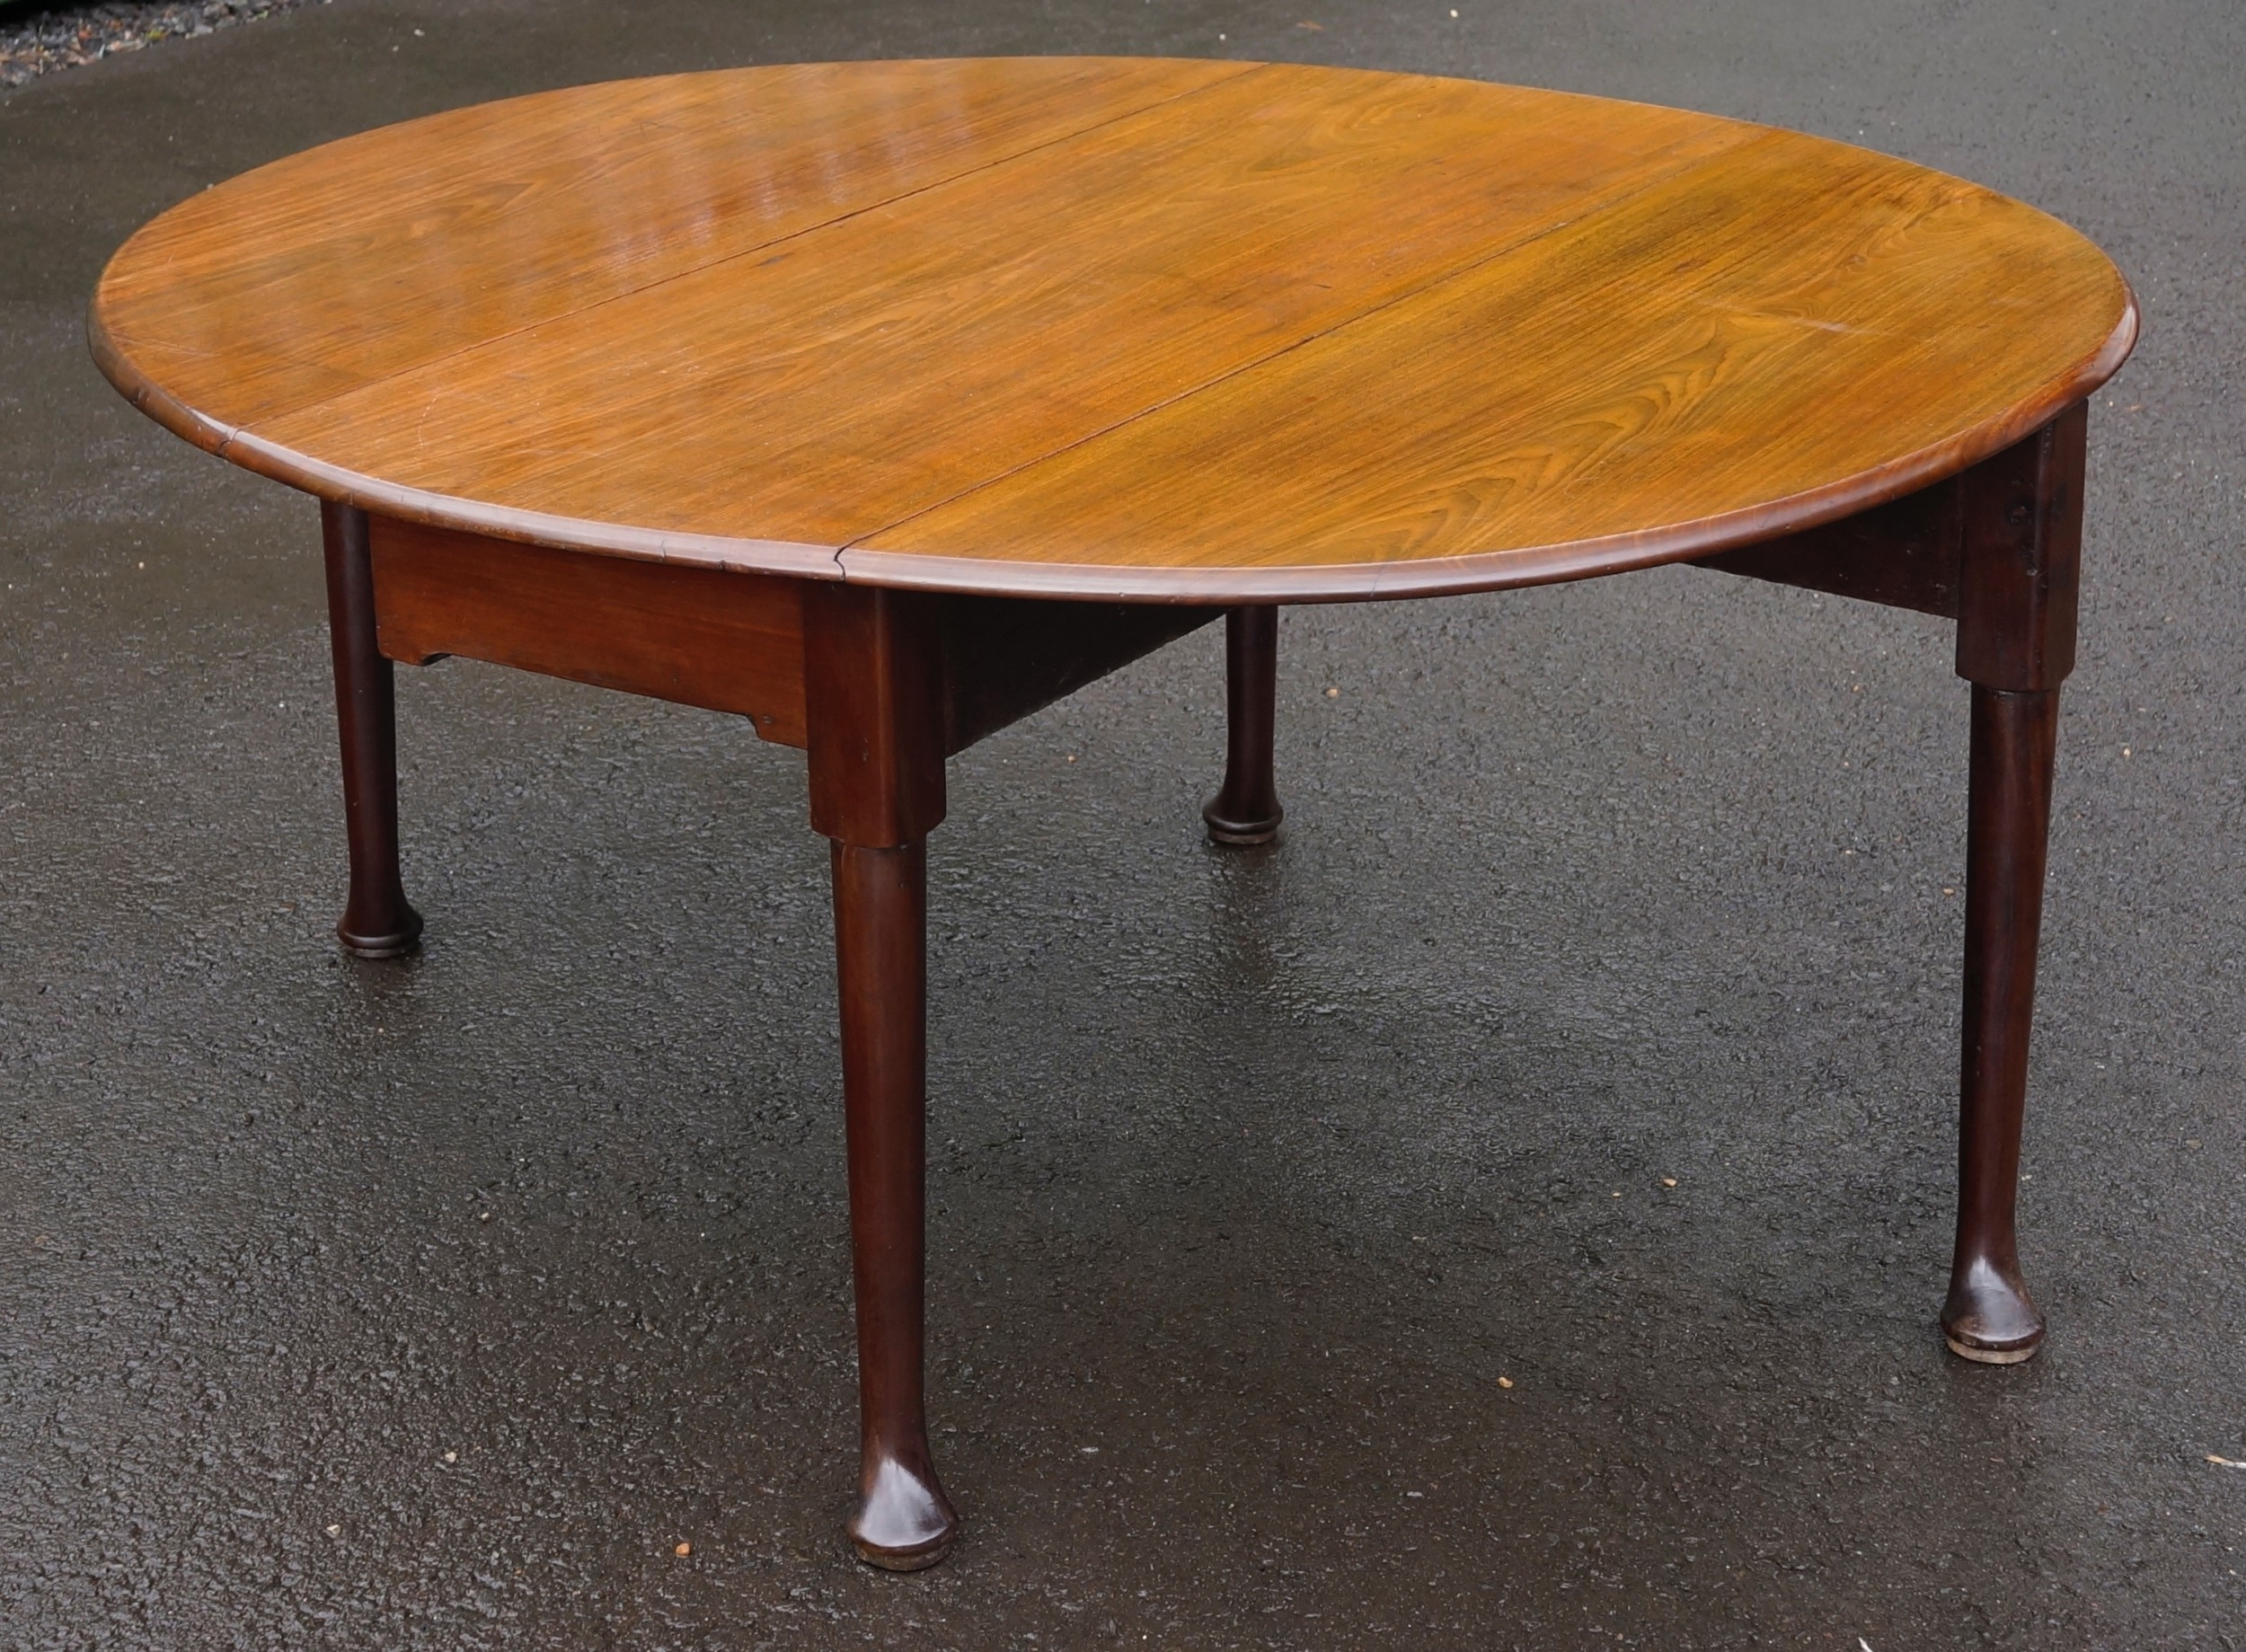 georgian 1760s mahogany oval pad foot drop leaf table a glorious colour